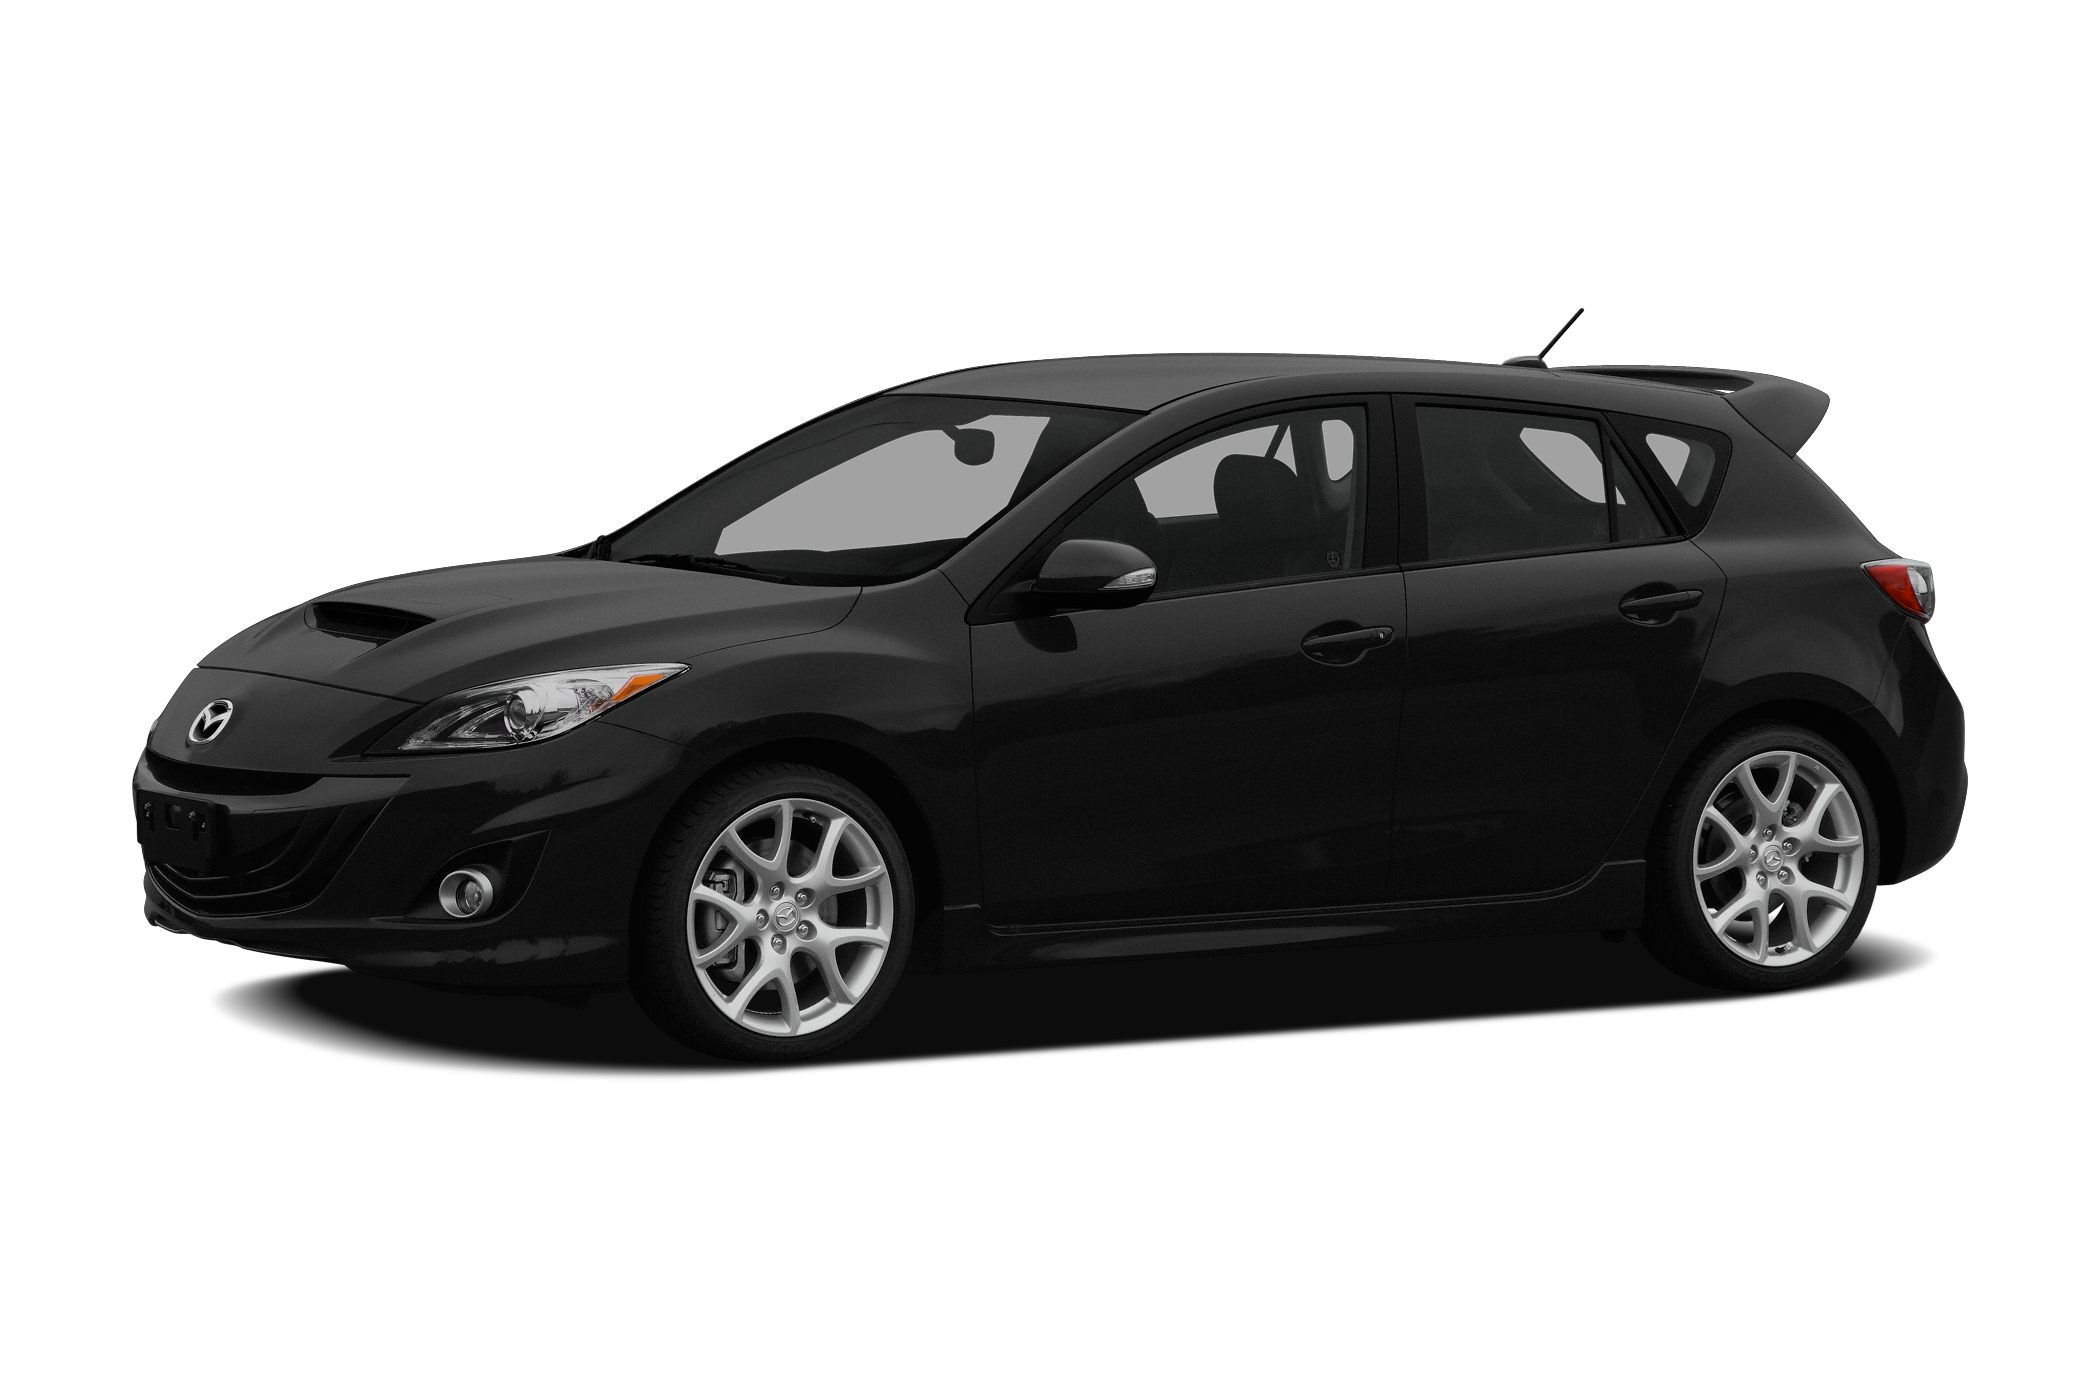 2010 Mazda MAZDASPEED3 Specs and Prices